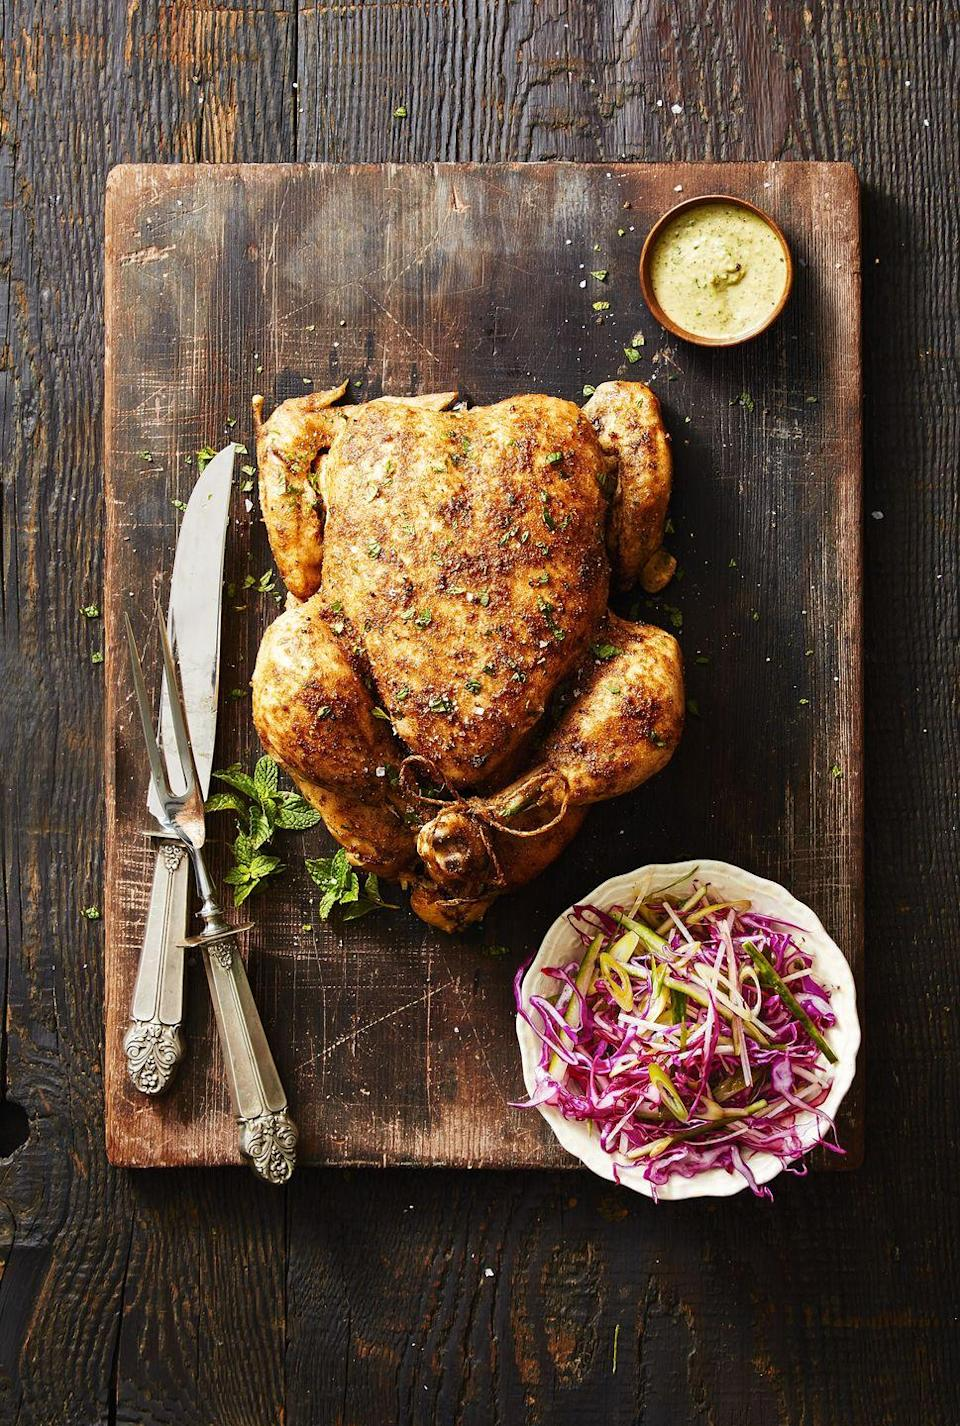 """<p>Skip the supermarket rotisserie chicken for this fool-proof entrée instead. A cabbage-kohlrabi slaw — tossed with cucumber, parsley, onions and lemon juice — on the side sneaks in additional veggies.</p><p><em><a href=""""https://www.goodhousekeeping.com/food-recipes/a42374/crock-pot-chicken-walnut-herb-recipe/"""" rel=""""nofollow noopener"""" target=""""_blank"""" data-ylk=""""slk:Get the recipe for Crock-Pot Chicken With Walnut-Herb Sauce »"""" class=""""link rapid-noclick-resp"""">Get the recipe for Crock-Pot Chicken With Walnut-Herb Sauce »</a></em></p><p><strong>RELATED:</strong> <a href=""""https://www.goodhousekeeping.com/food-recipes/easy/g755/chicken-breast-recipes/"""" rel=""""nofollow noopener"""" target=""""_blank"""" data-ylk=""""slk:60+ Chicken Recipes That Are Anything But Boring"""" class=""""link rapid-noclick-resp"""">60+ Chicken Recipes That Are Anything But Boring</a><br></p>"""